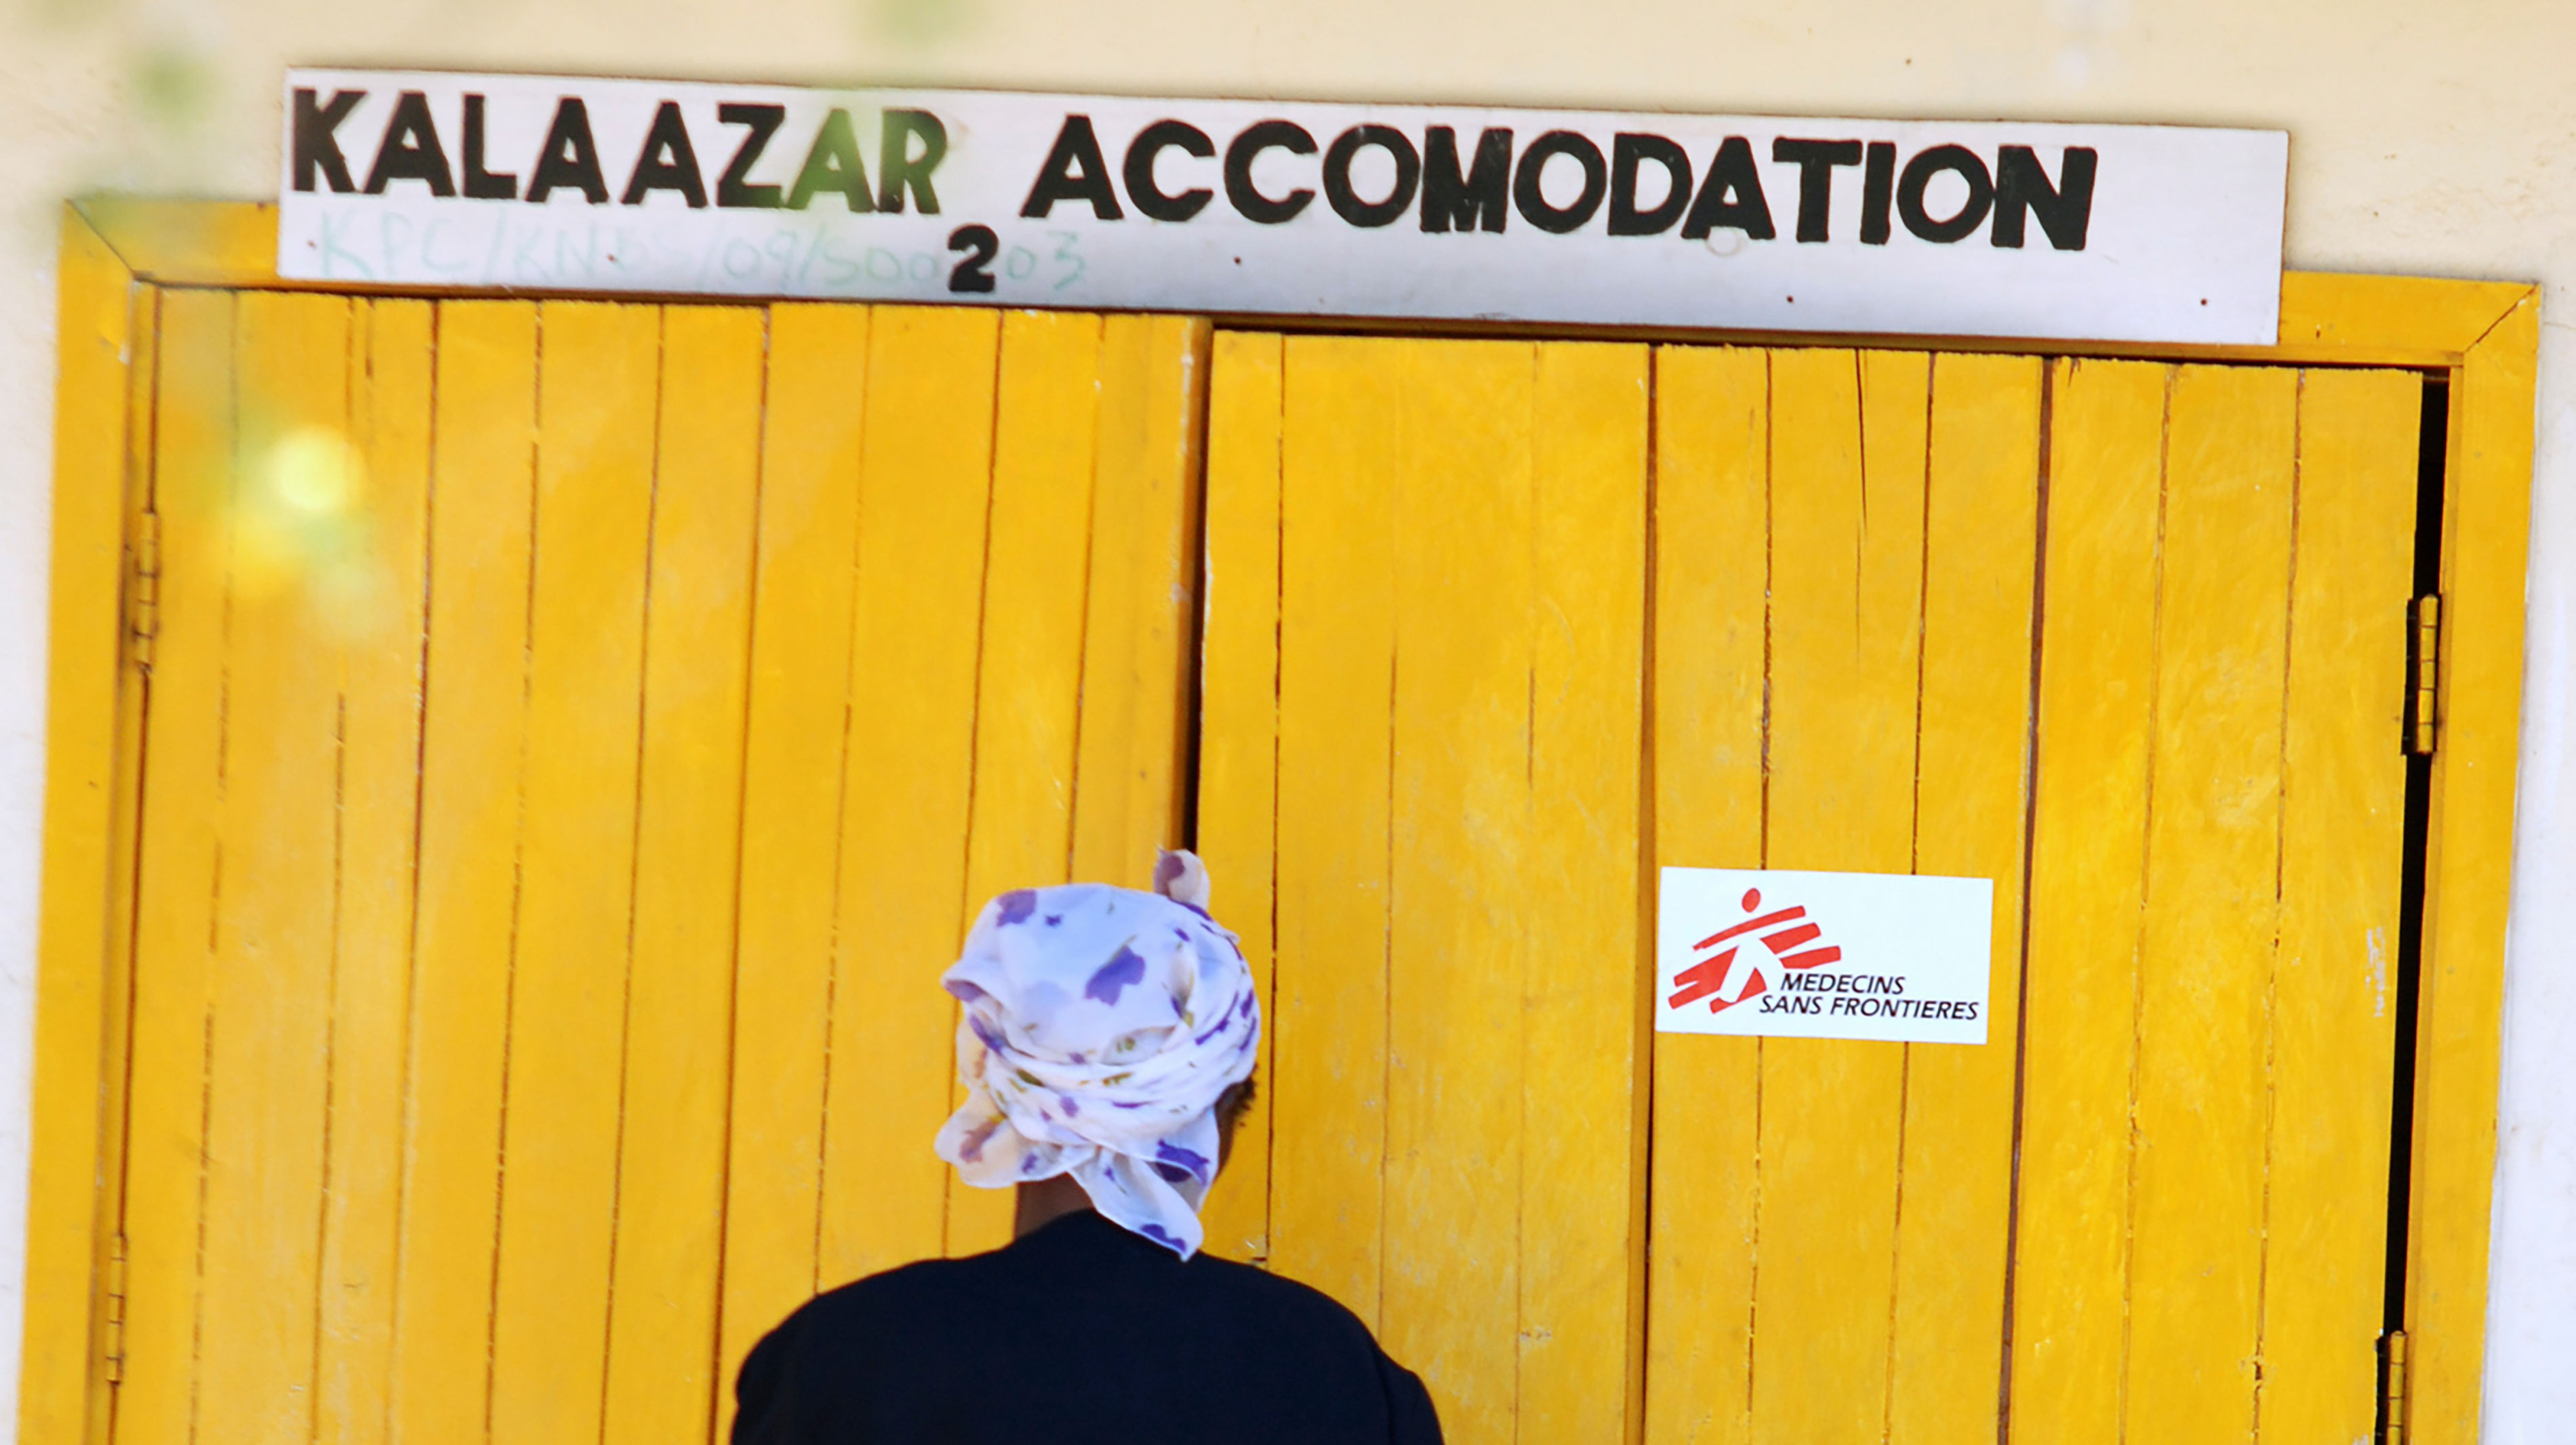 In Kacheliba, MSF offers a free treatment for patients affected by visceral leishmaniasis, commonly known as Kala-Azar. This disease, which can be fatal if not treated, is transmitted by sand flies